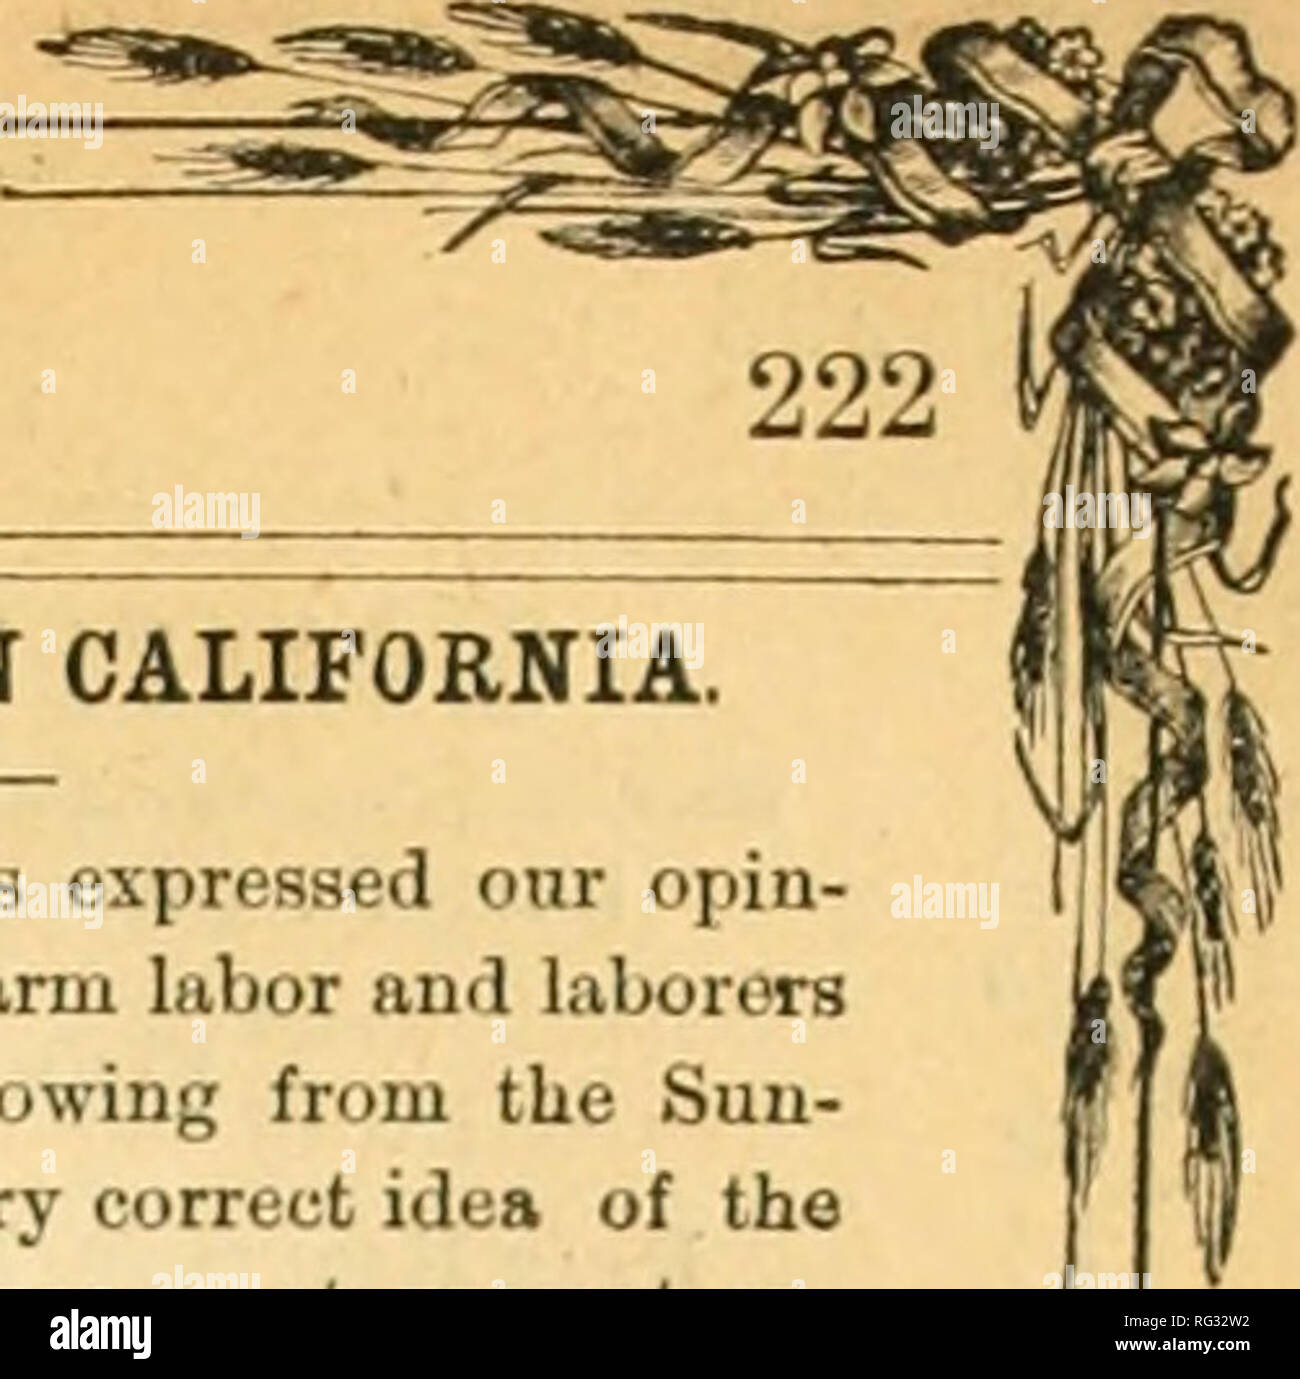 . California agriculturist and live stock journal. Agriculture -- California; Livestock -- California; Animal industry -- California. California Agriculturist and Live Stock Journal.. it really fit for the Gods ! The alcohol it now contains, which is the one thing that makes it desirable, will be deprived of its druuken- ing qualities or power, and be harmlessly exhilerating and charmingly extatic in its manifold goodness. Partakers thereof can then get glorious without getting drunk, and then growing appetites for something stronger will lead only to a harmless indulgence in a little more gra - Stock Image